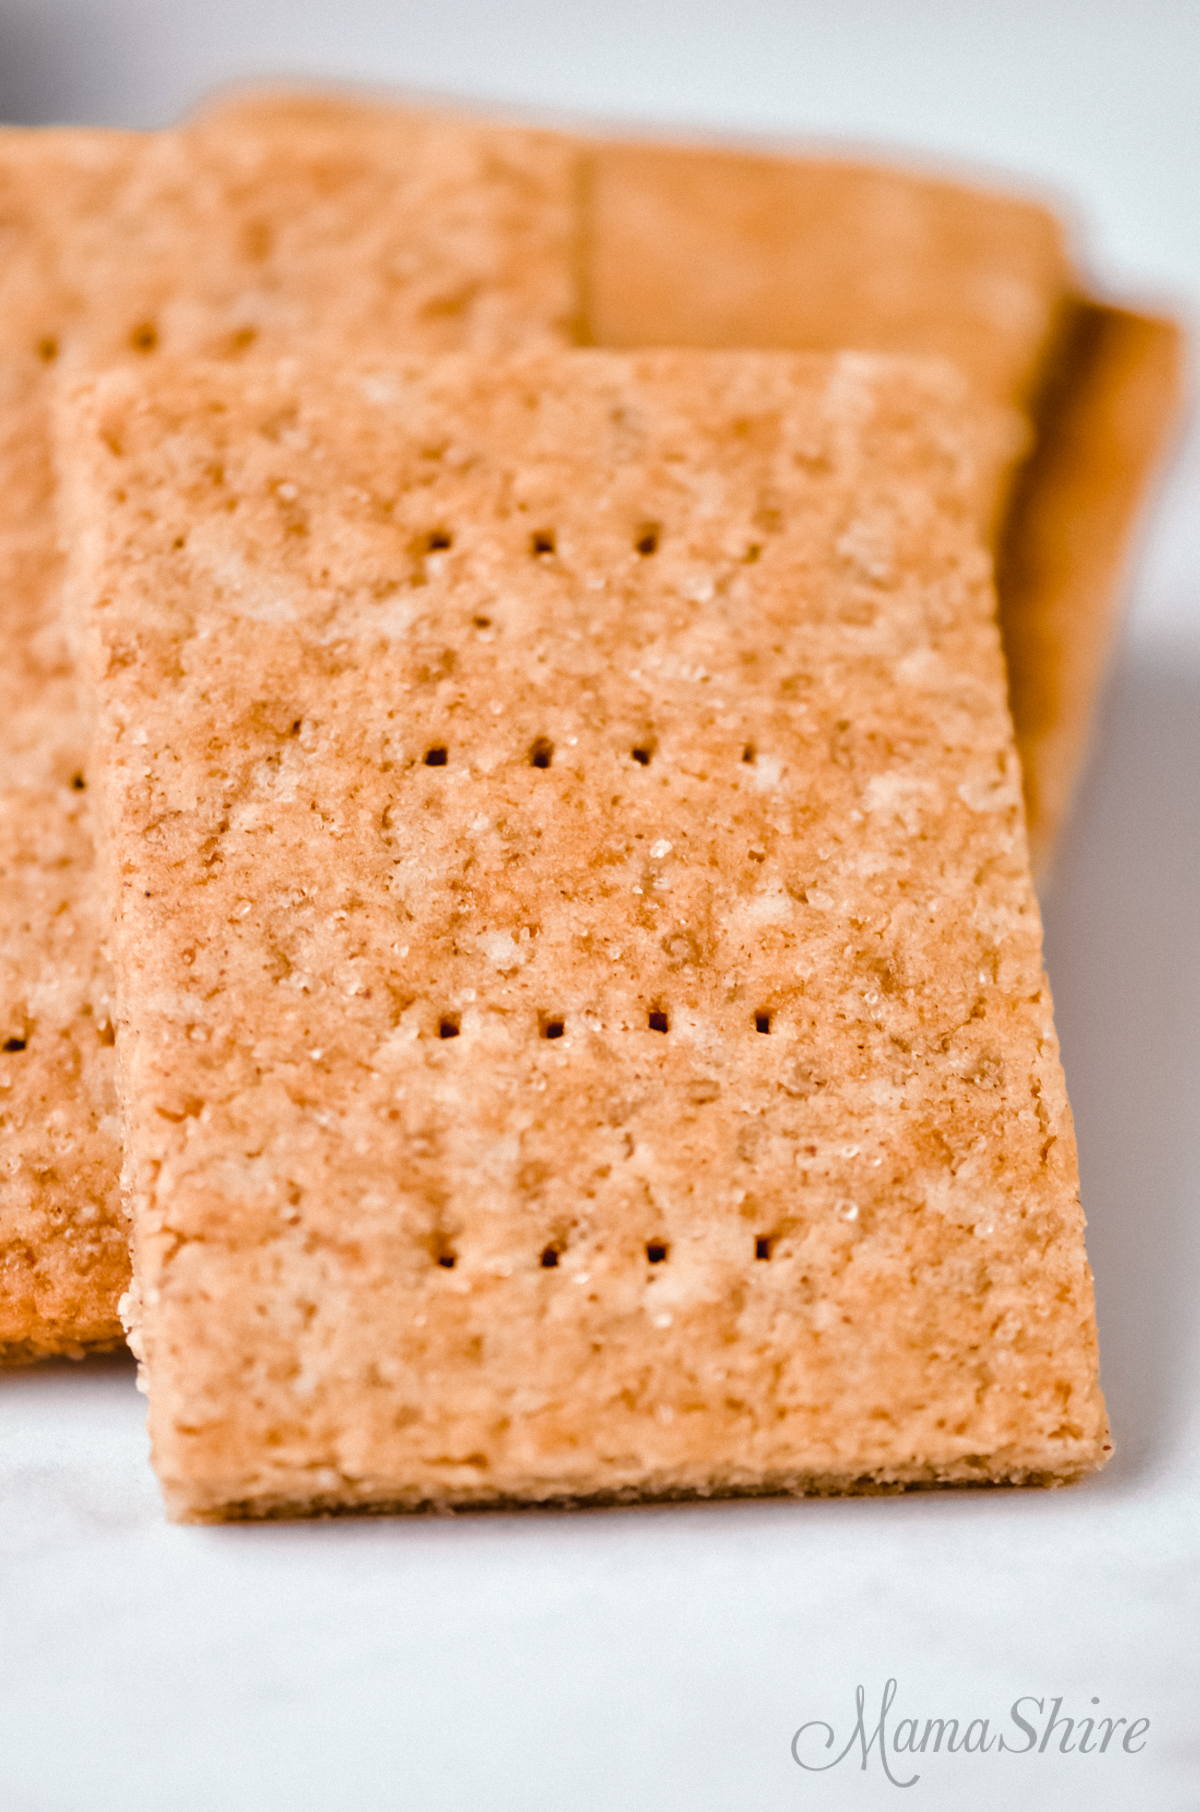 Crackers made with a homemade gluten-free graham cracker recipe.